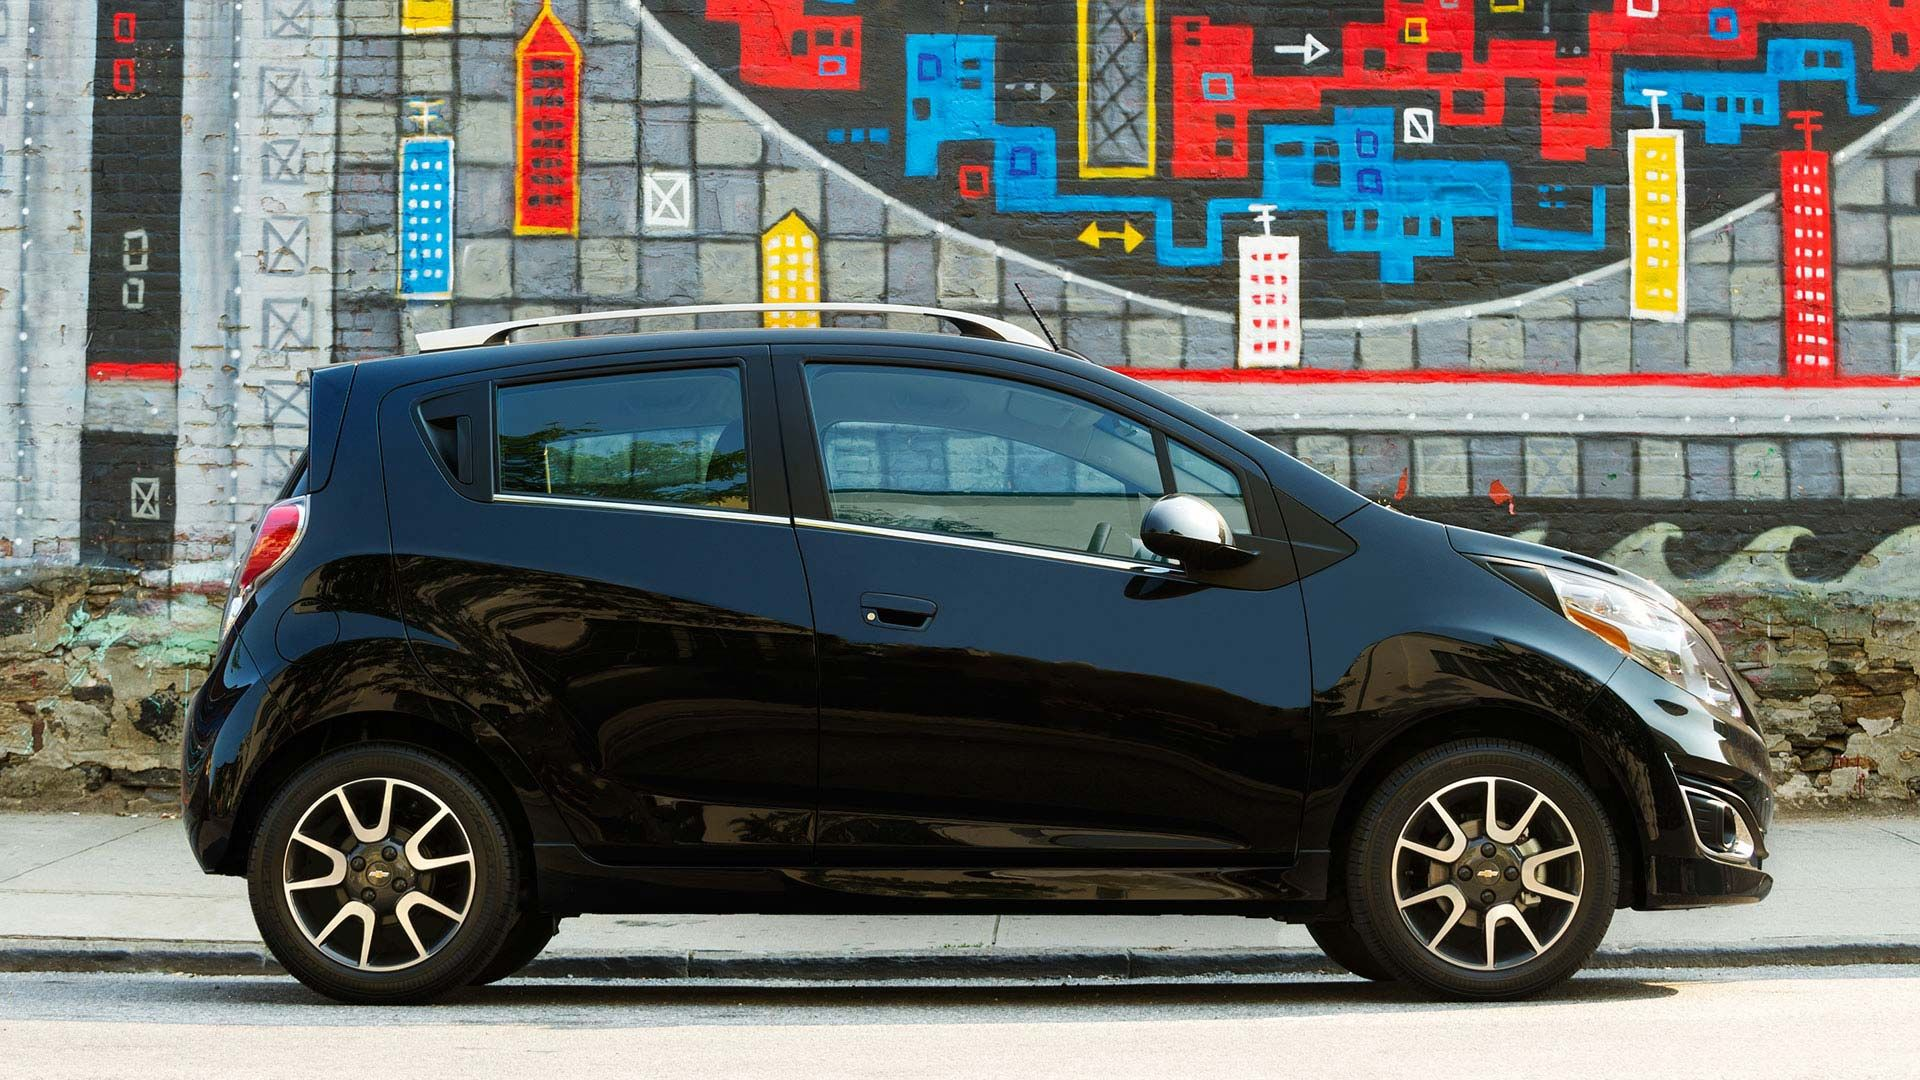 Conquer the urban jungle chevy spark